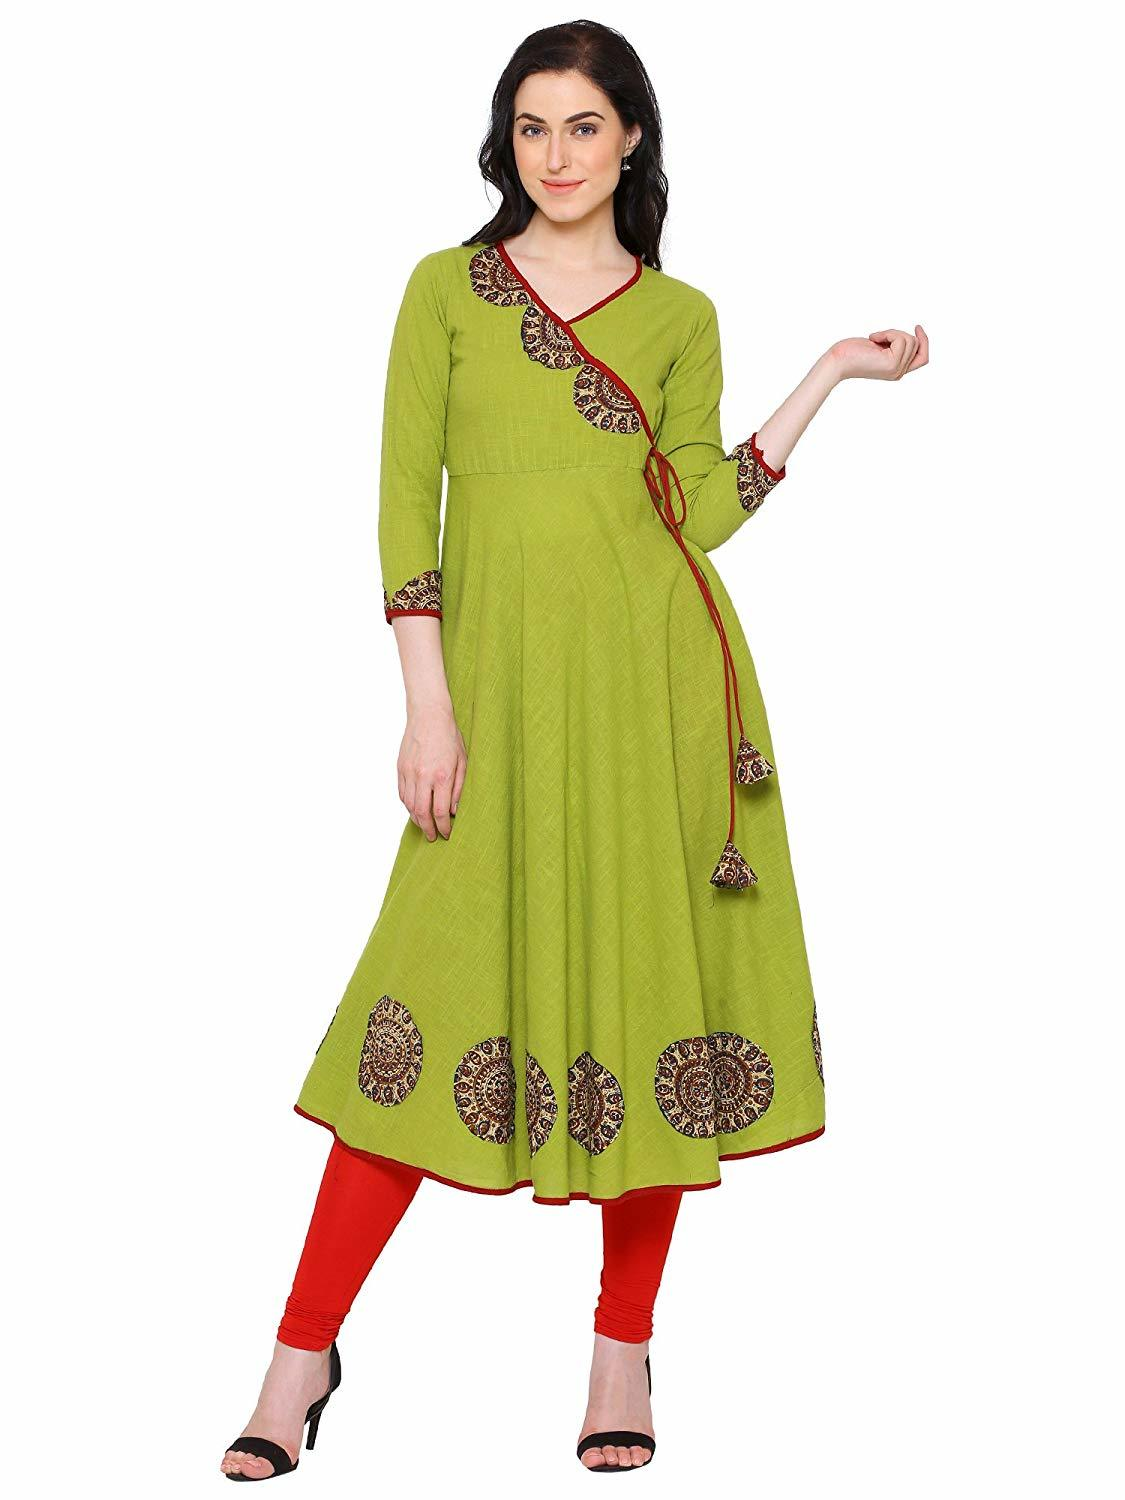 Women's Anarkali Kurta